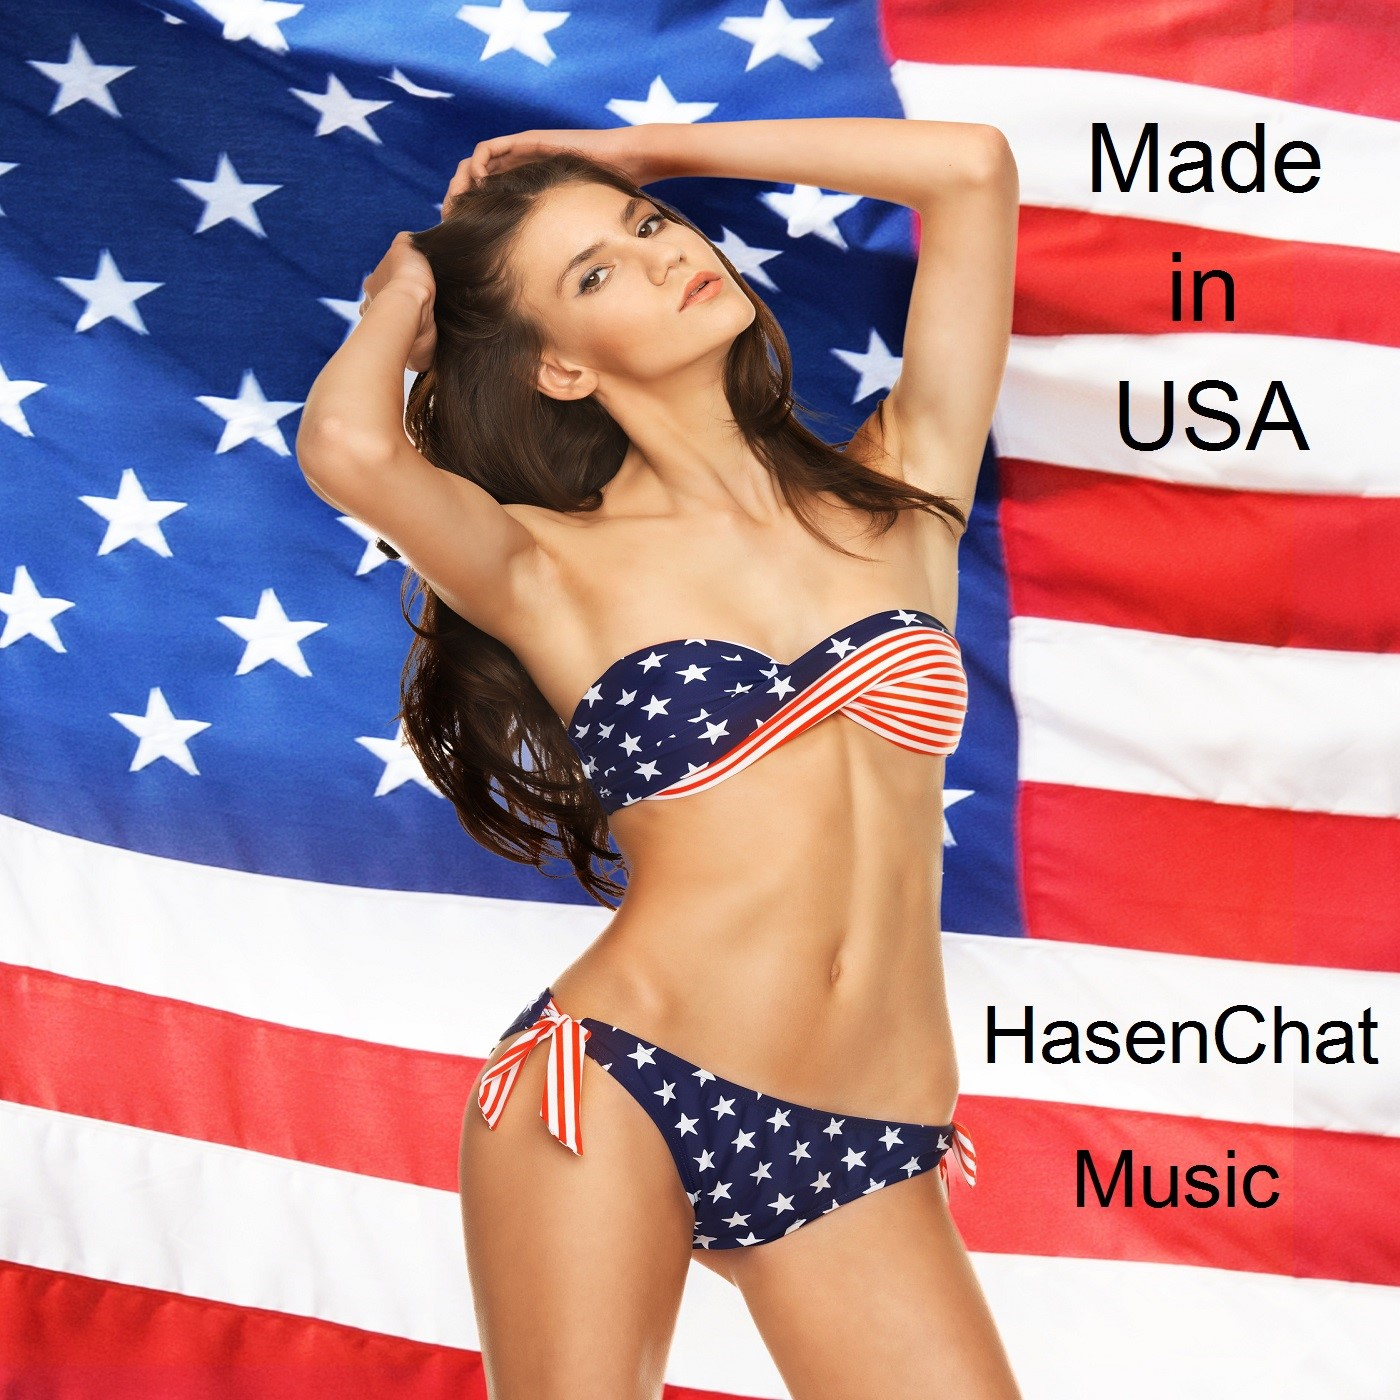 picture of model in bikini with american flag